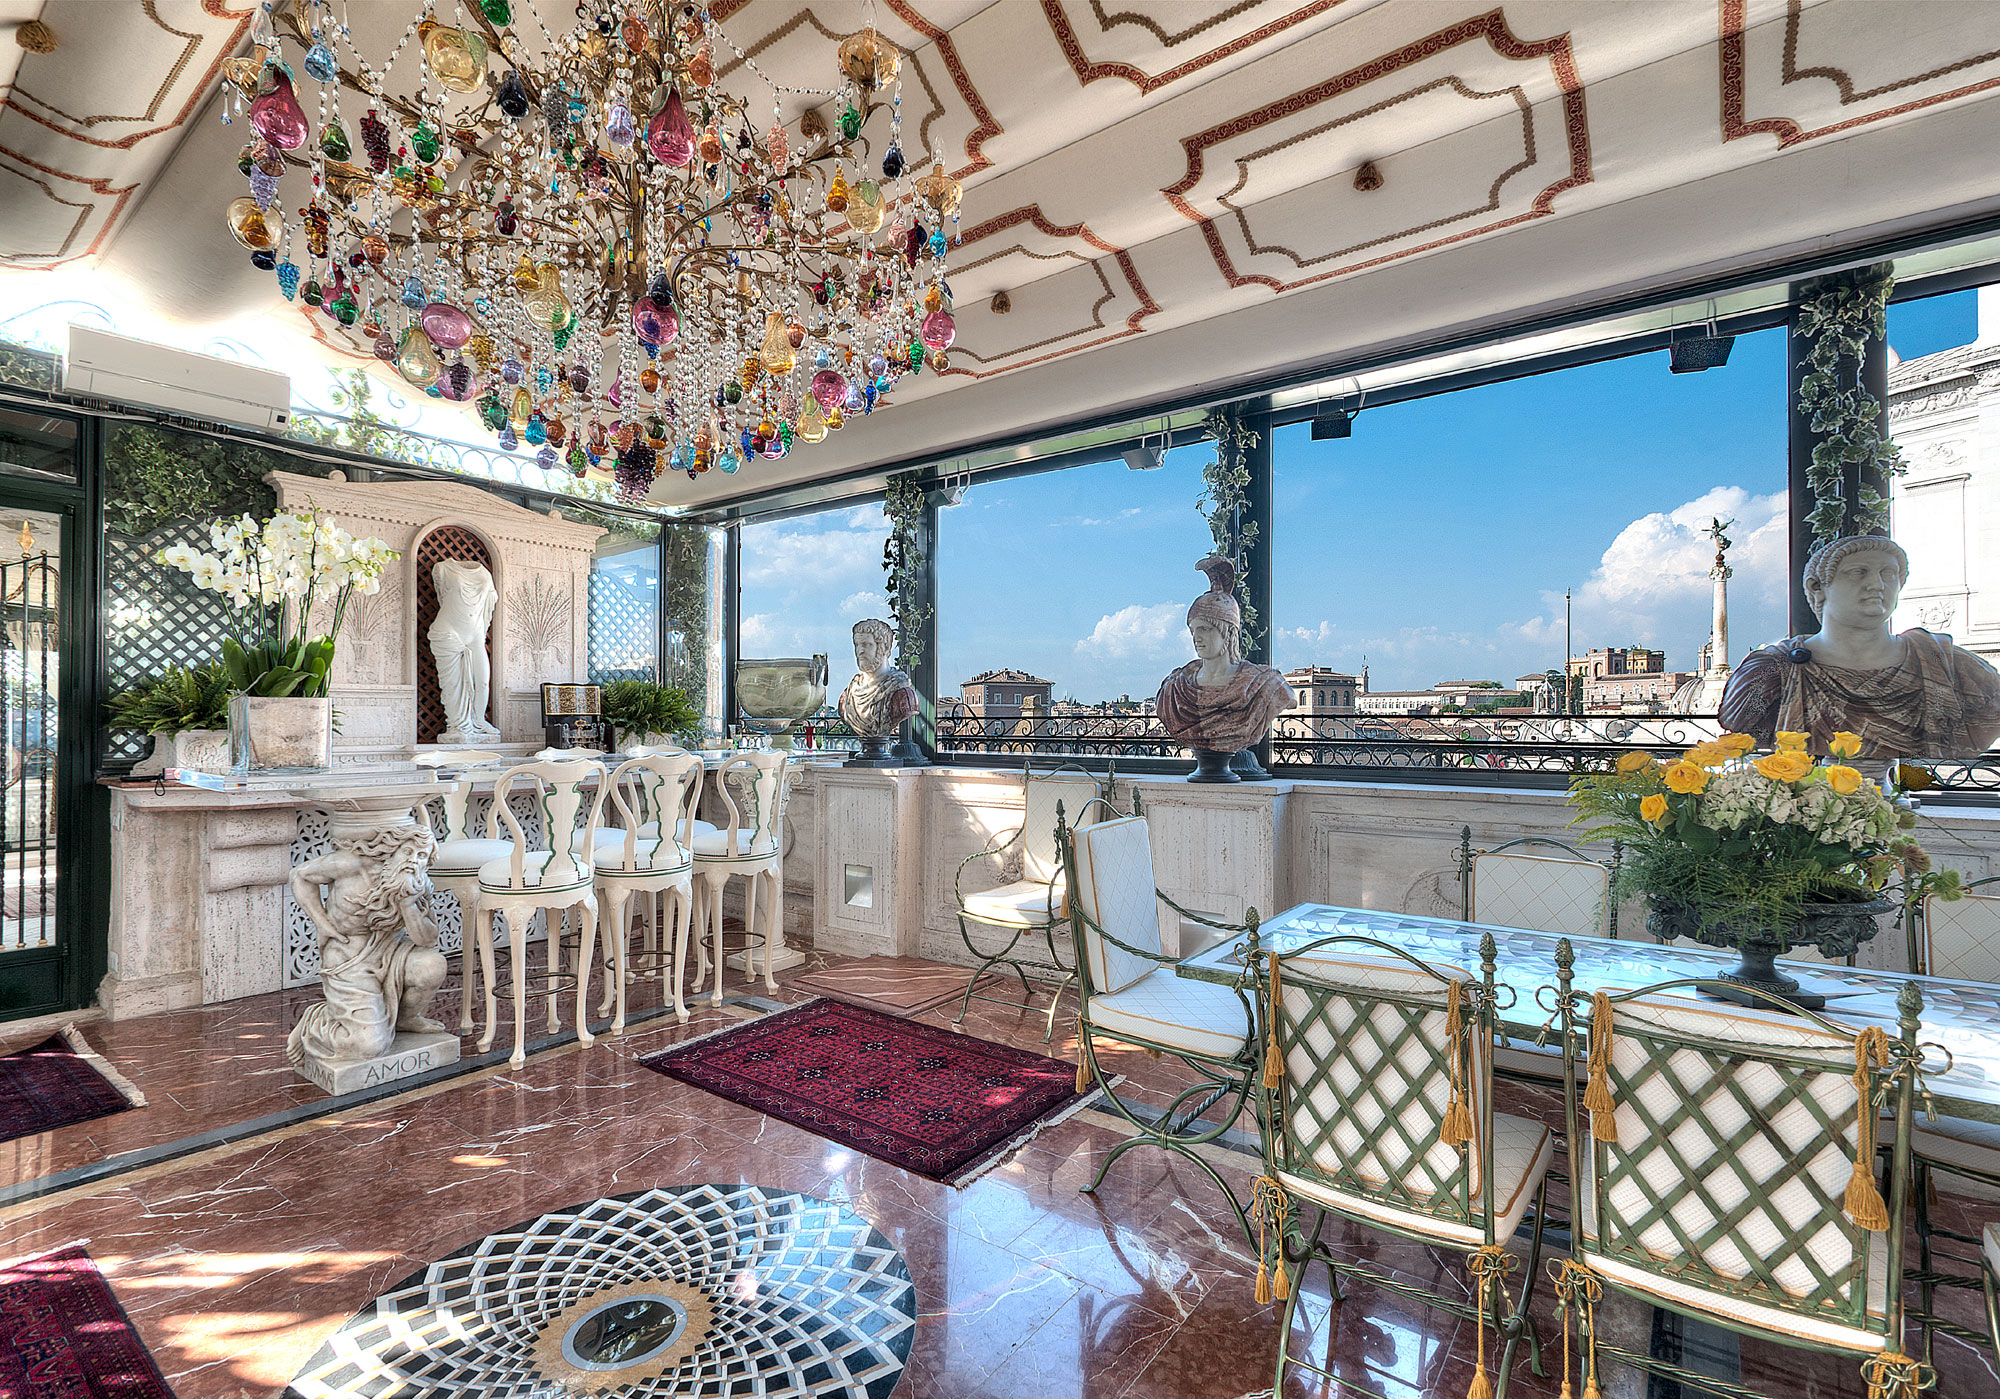 This historic palazzo in the heart of Rome has breathtaking 360-degree views of the Piazza Venezia, the Santa Maria in Ara Coeli, and the National Monument of Victor Emmanuel II.